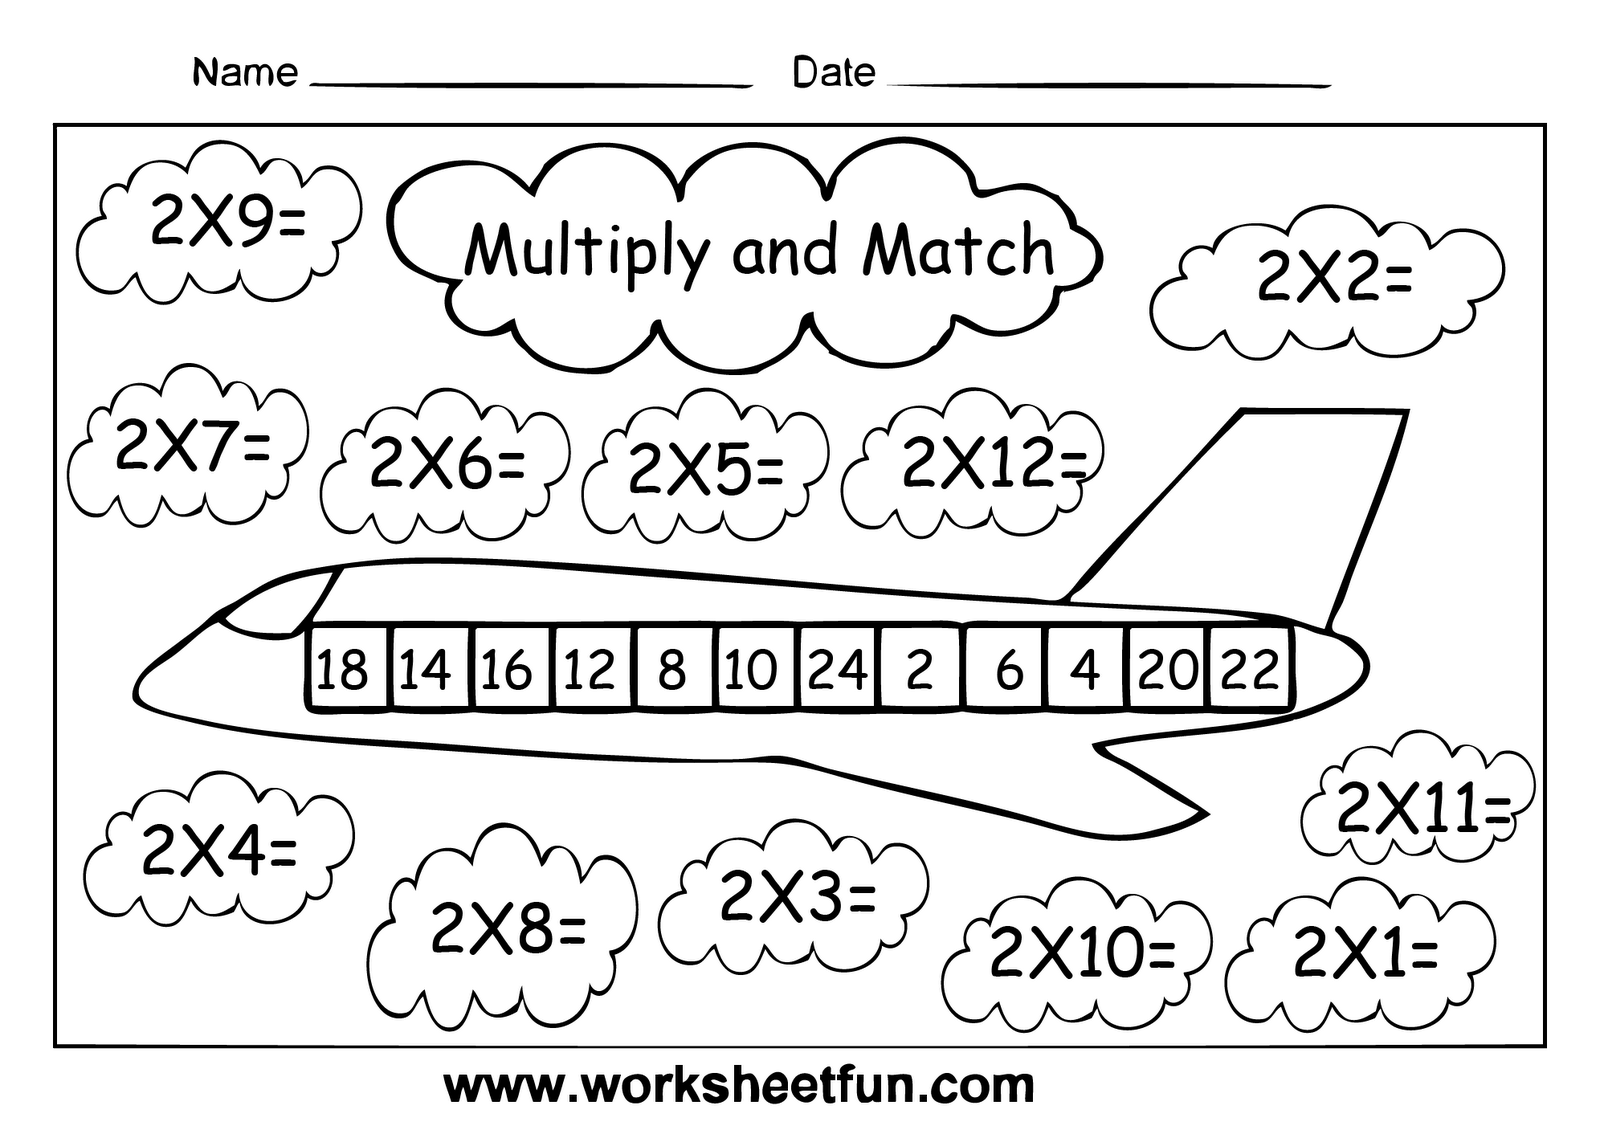 Worksheet 10541492 3 Times Multiplication Worksheets – 2 and 3 Multiplication Worksheets